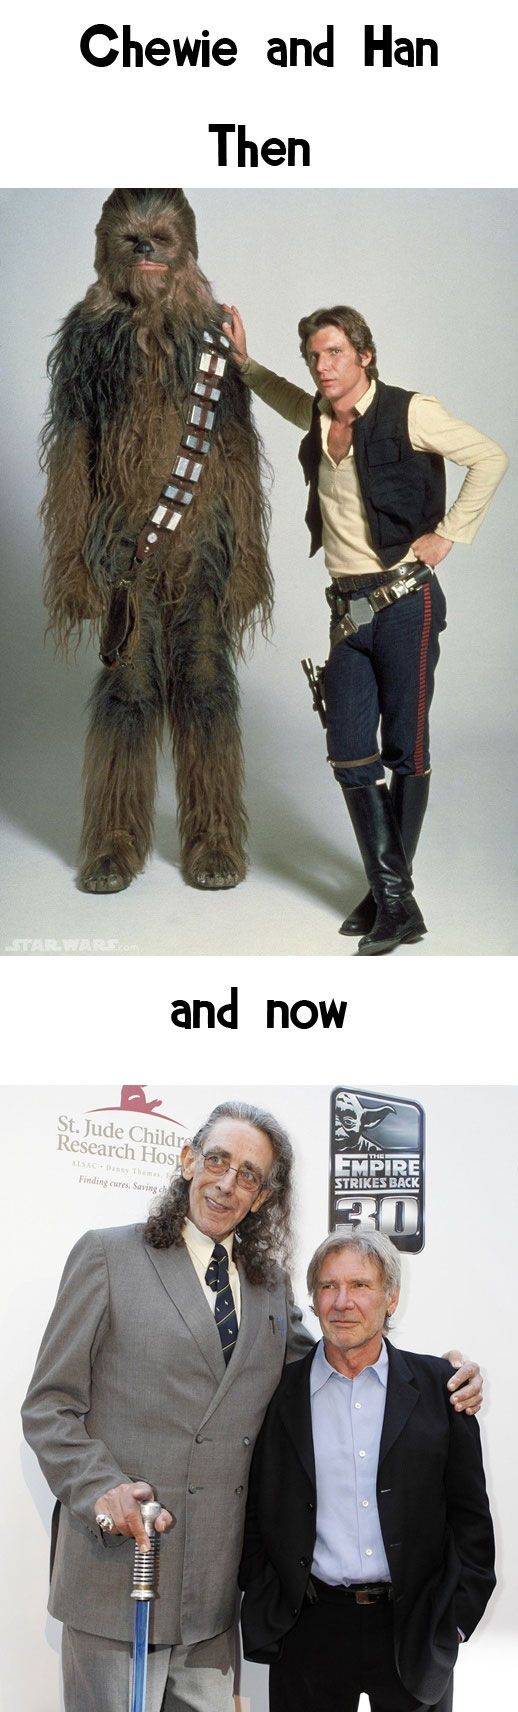 Chewbacca & Han Solo. In the bottom pic, Peter Mayhew's walking cane is a lightsaber! Win.